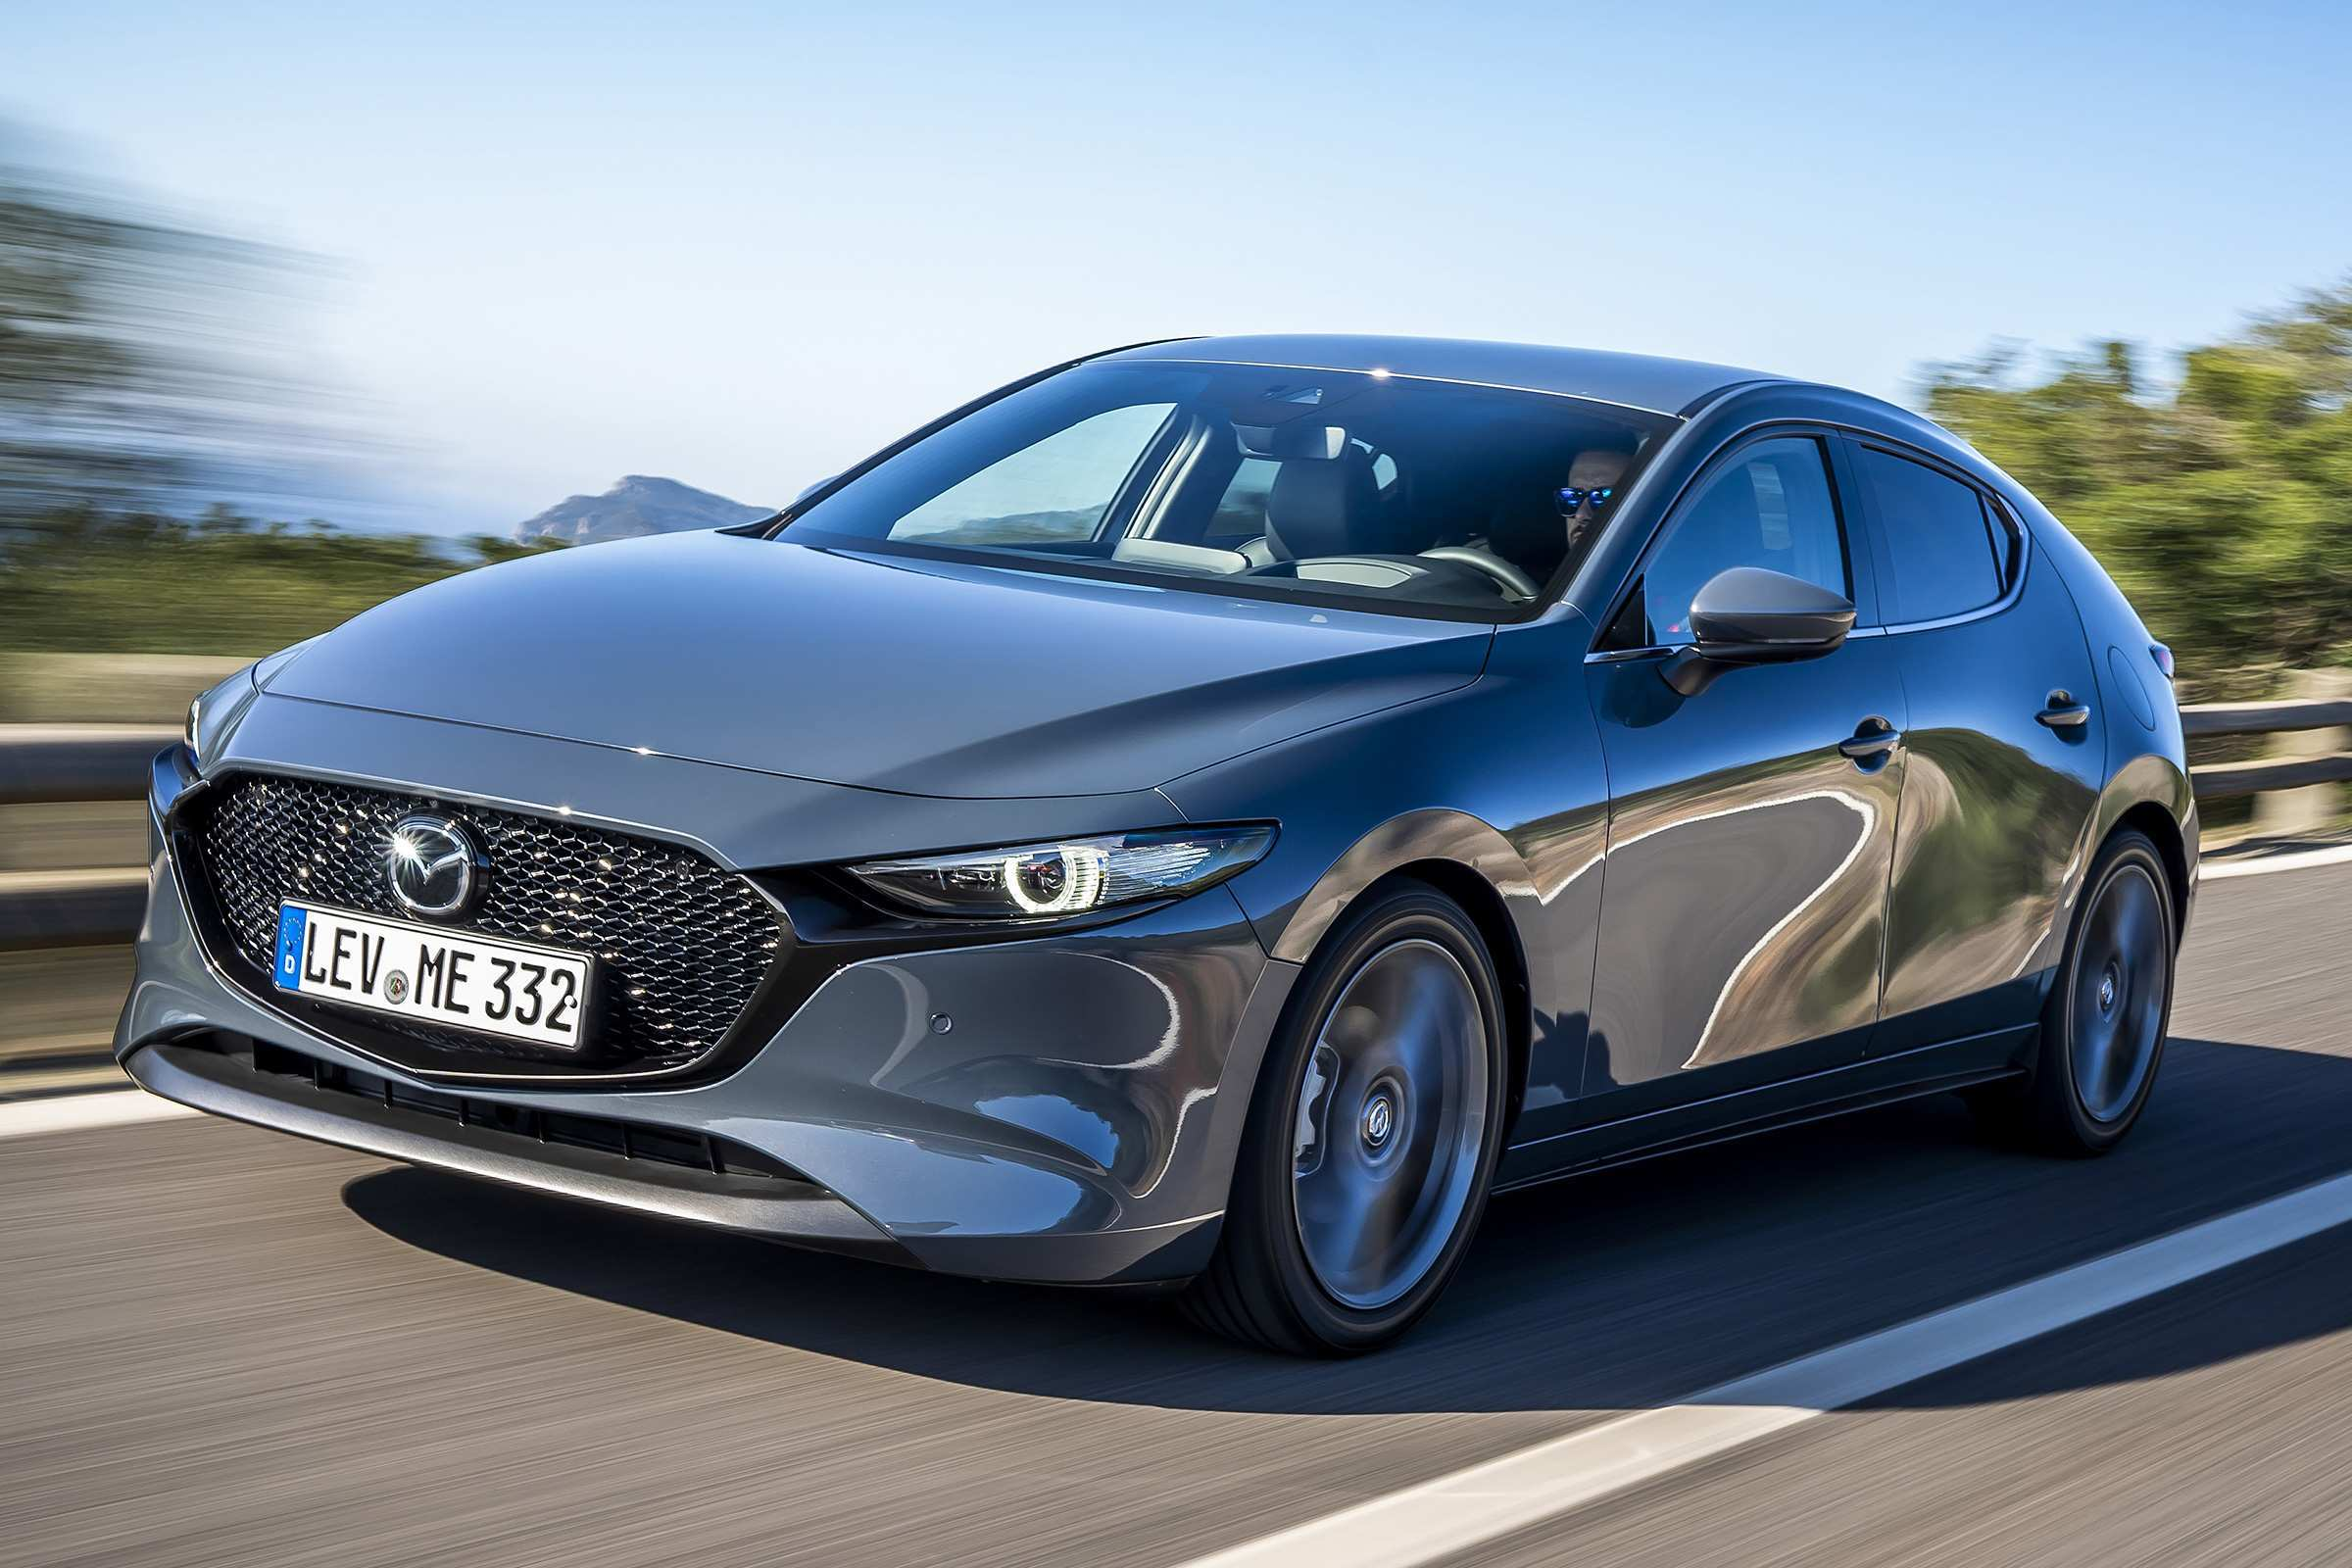 62 The New Xe Mazda 2019 Spesification Pictures for New Xe Mazda 2019 Spesification